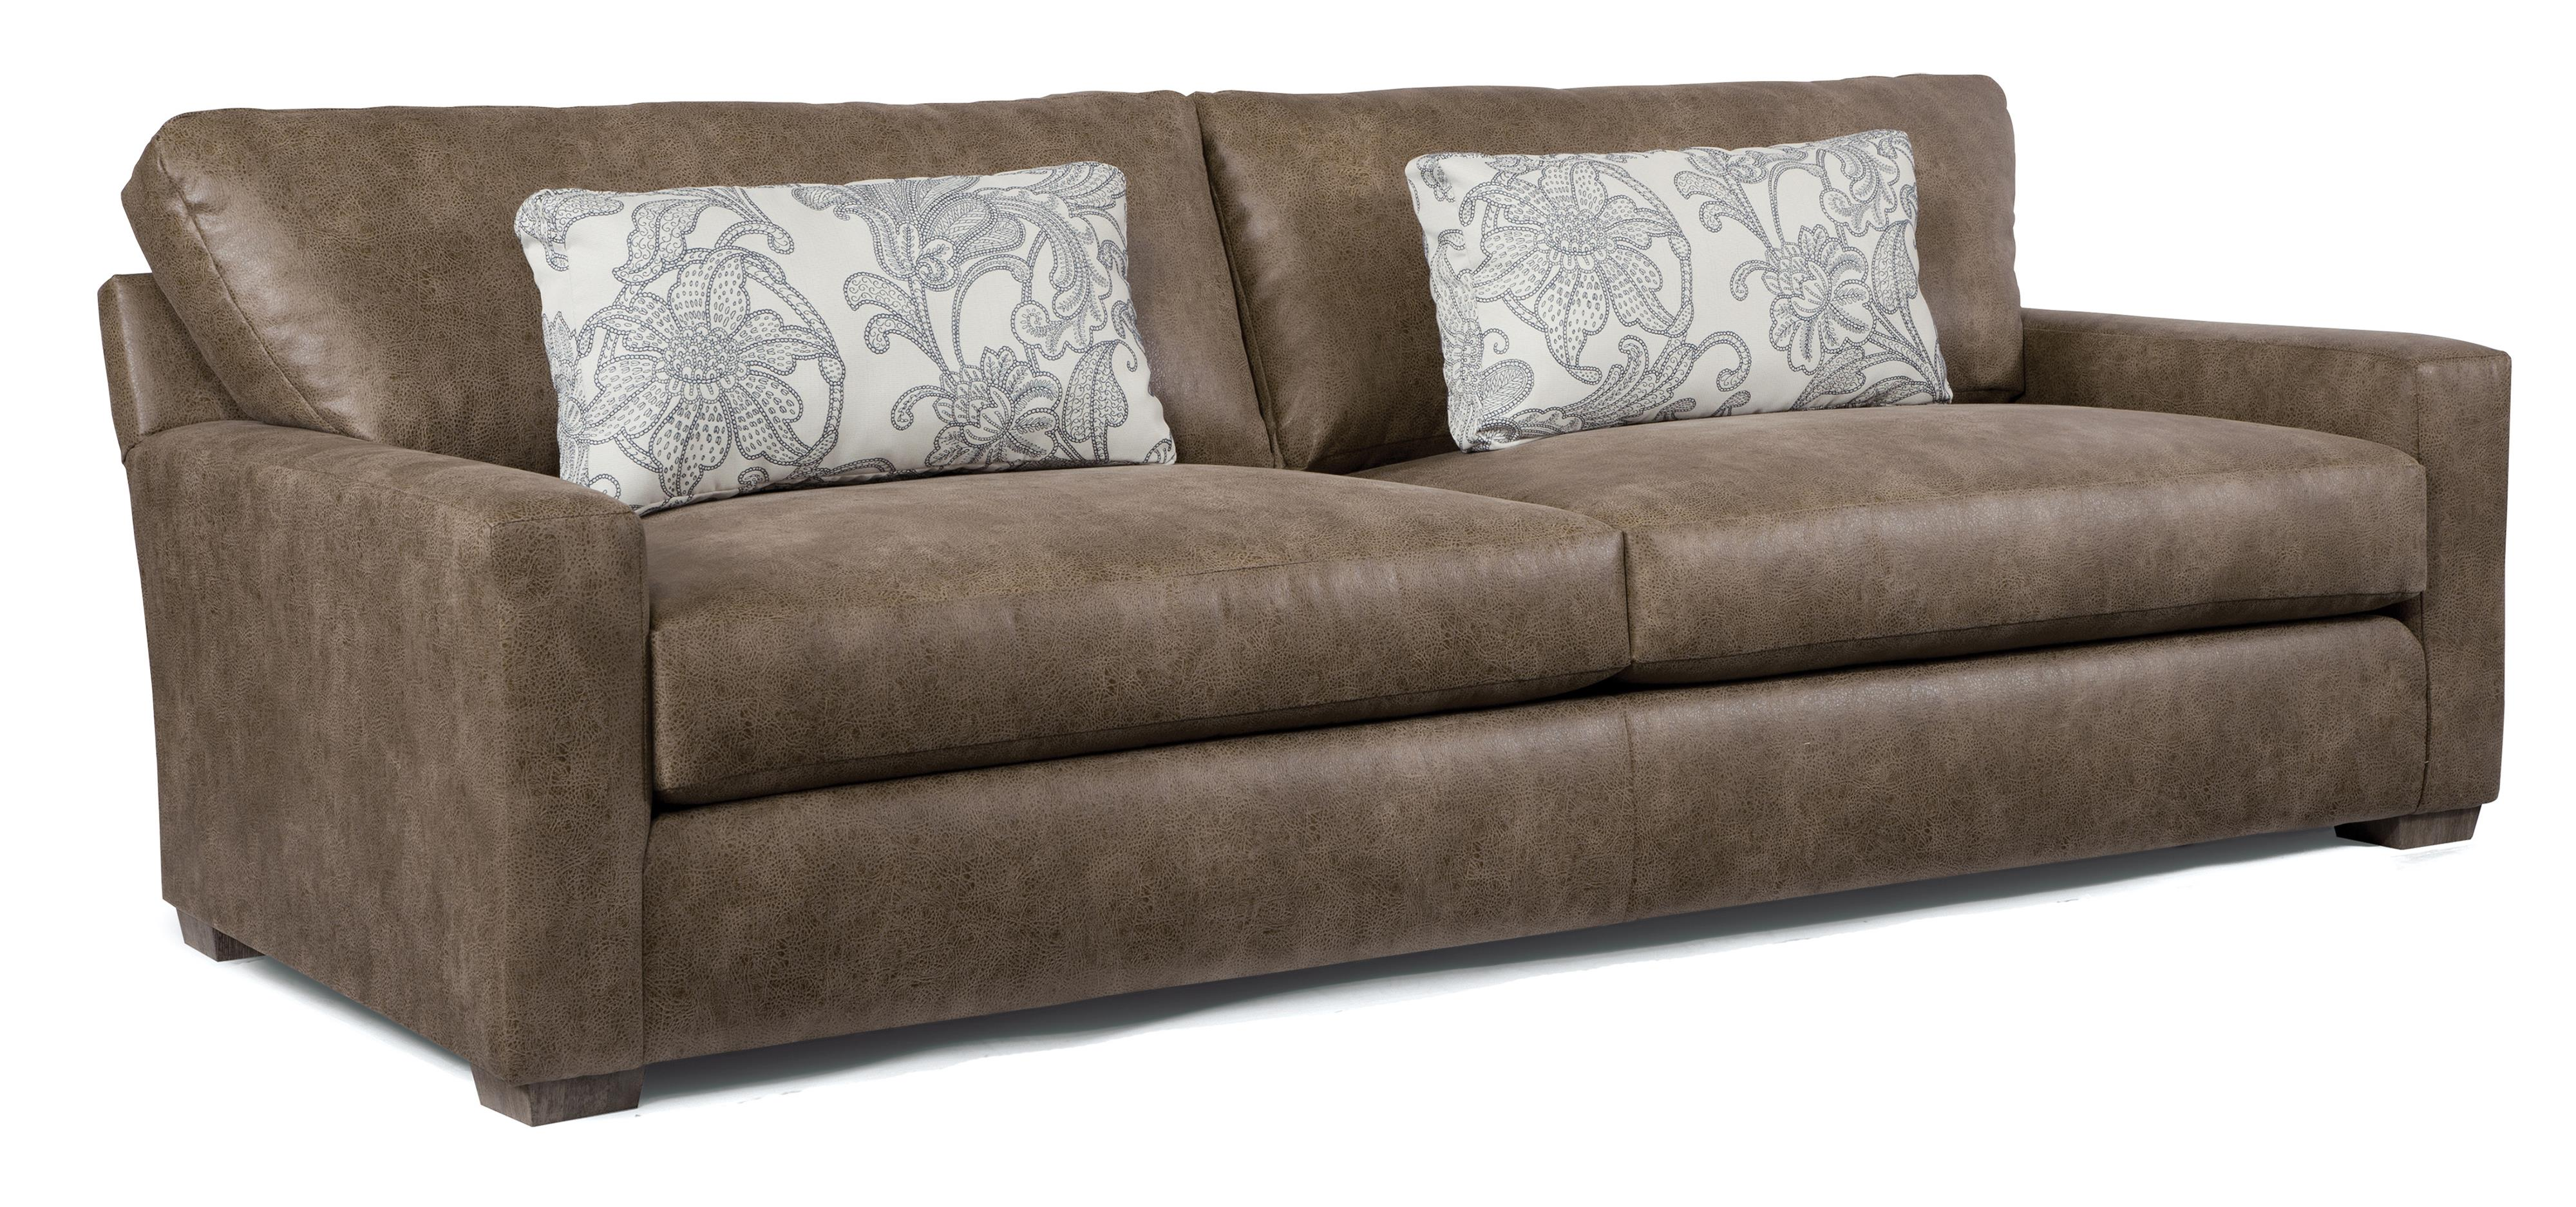 Best Home Furnishings Hannah Stationary Sofa   Item Number: S68 23289